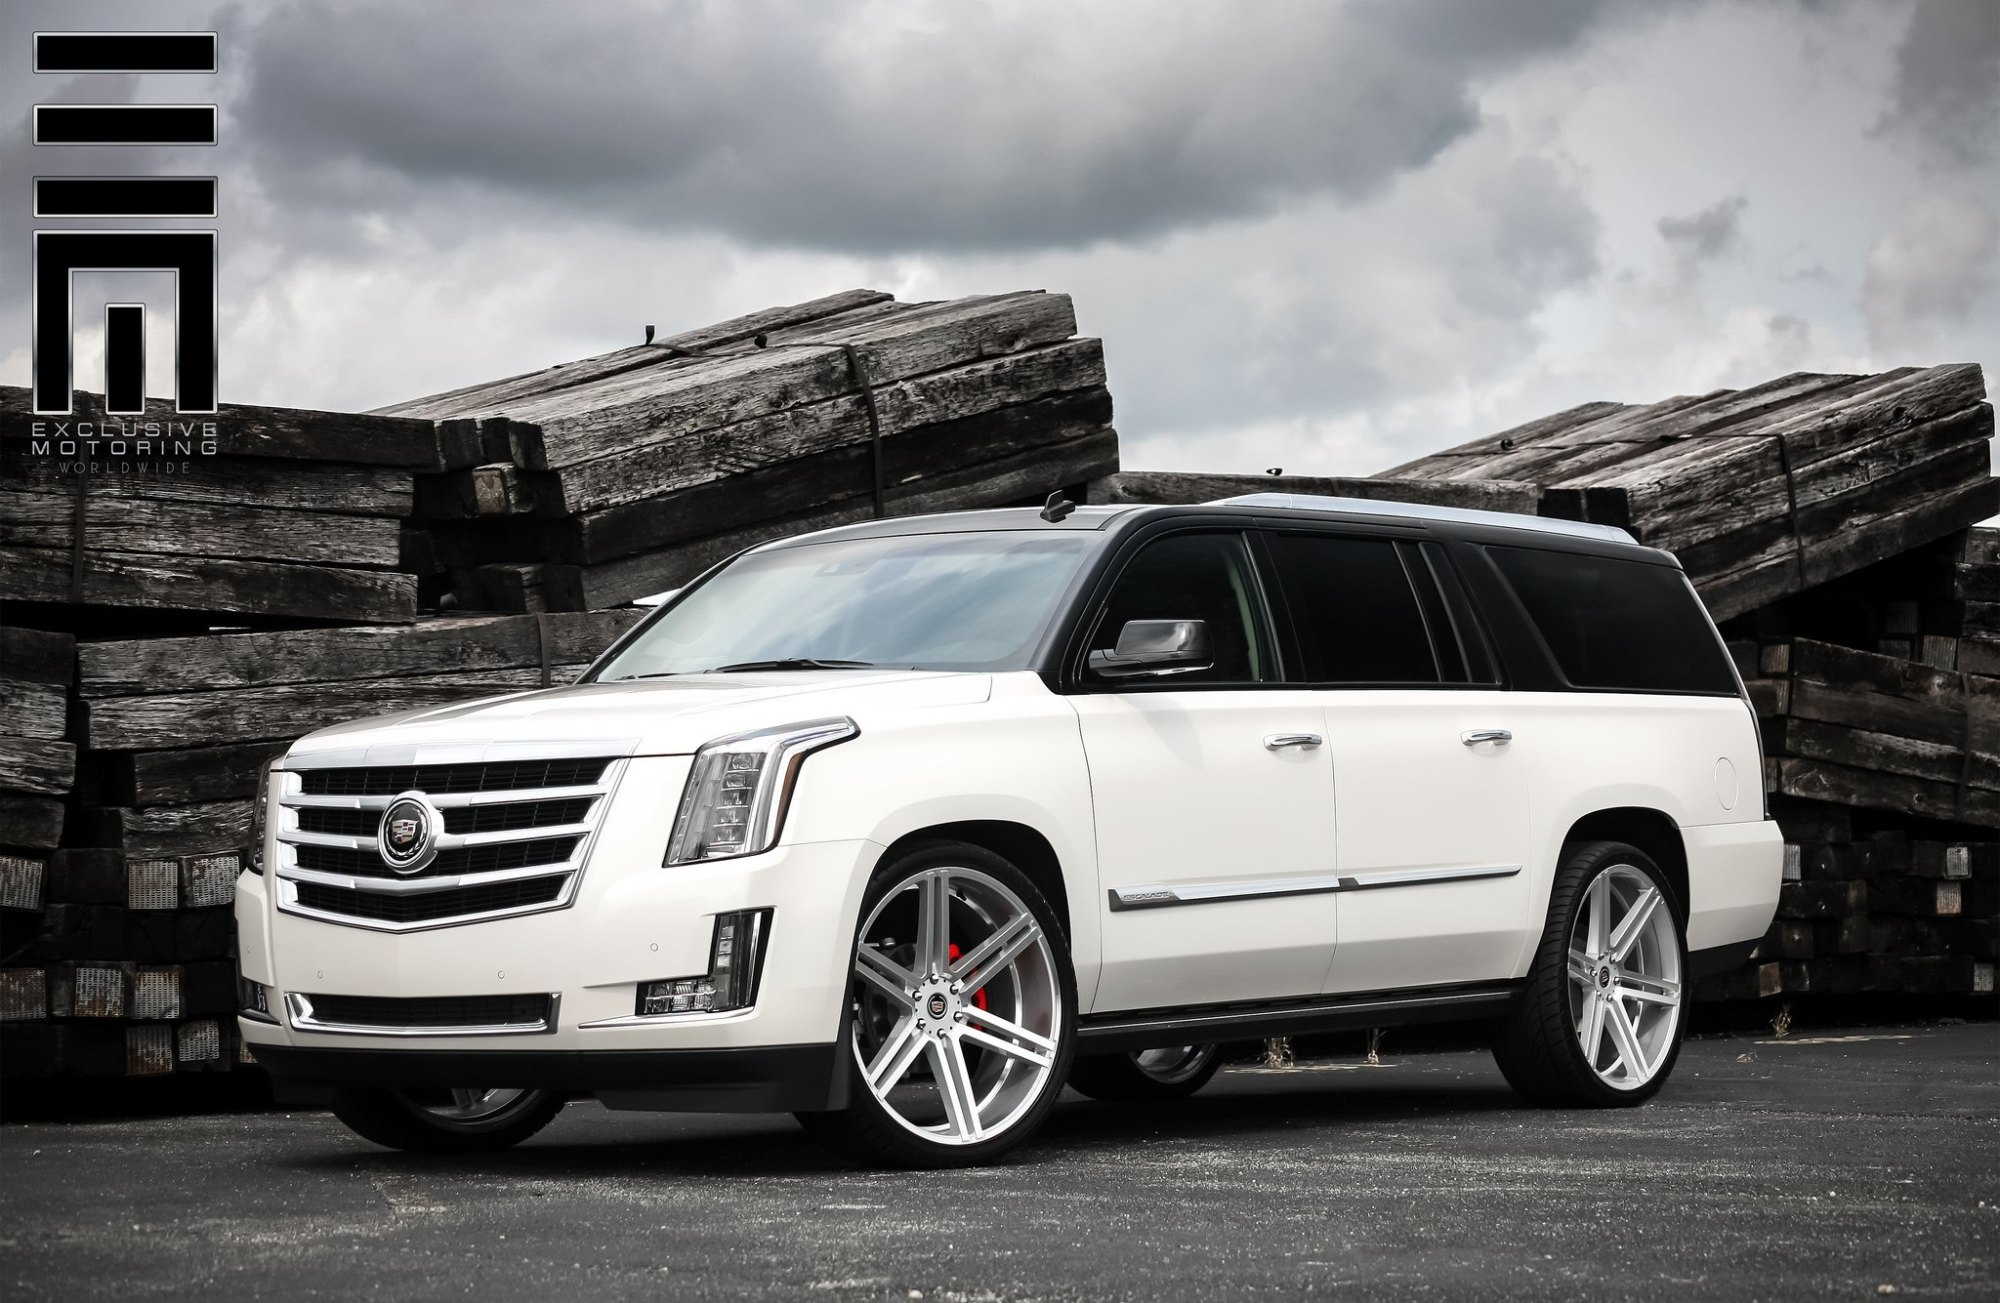 hight resolution of top white escalade photo by exclusive motoring